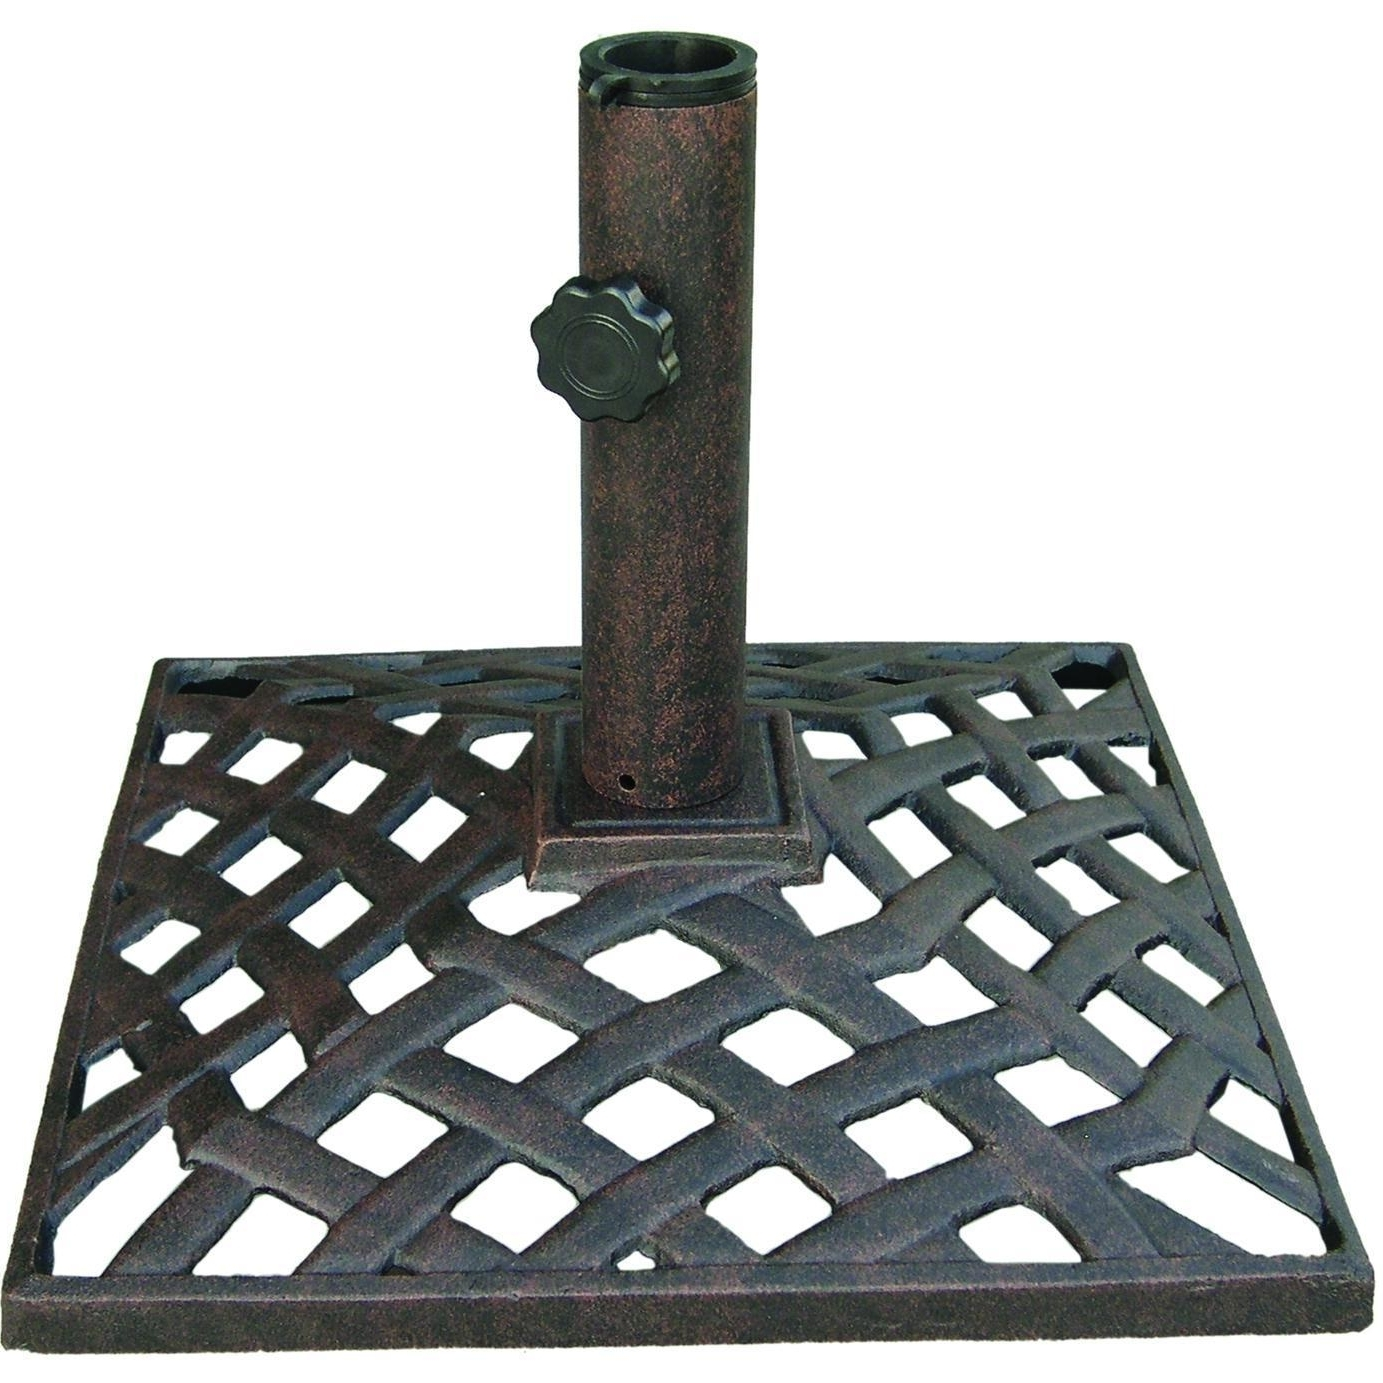 Patio Umbrellas And Bases With Regard To Widely Used Darlee 35 Lb Basket Weave Cast Iron Patio Umbrella Base : Ultimate Patio (View 16 of 20)